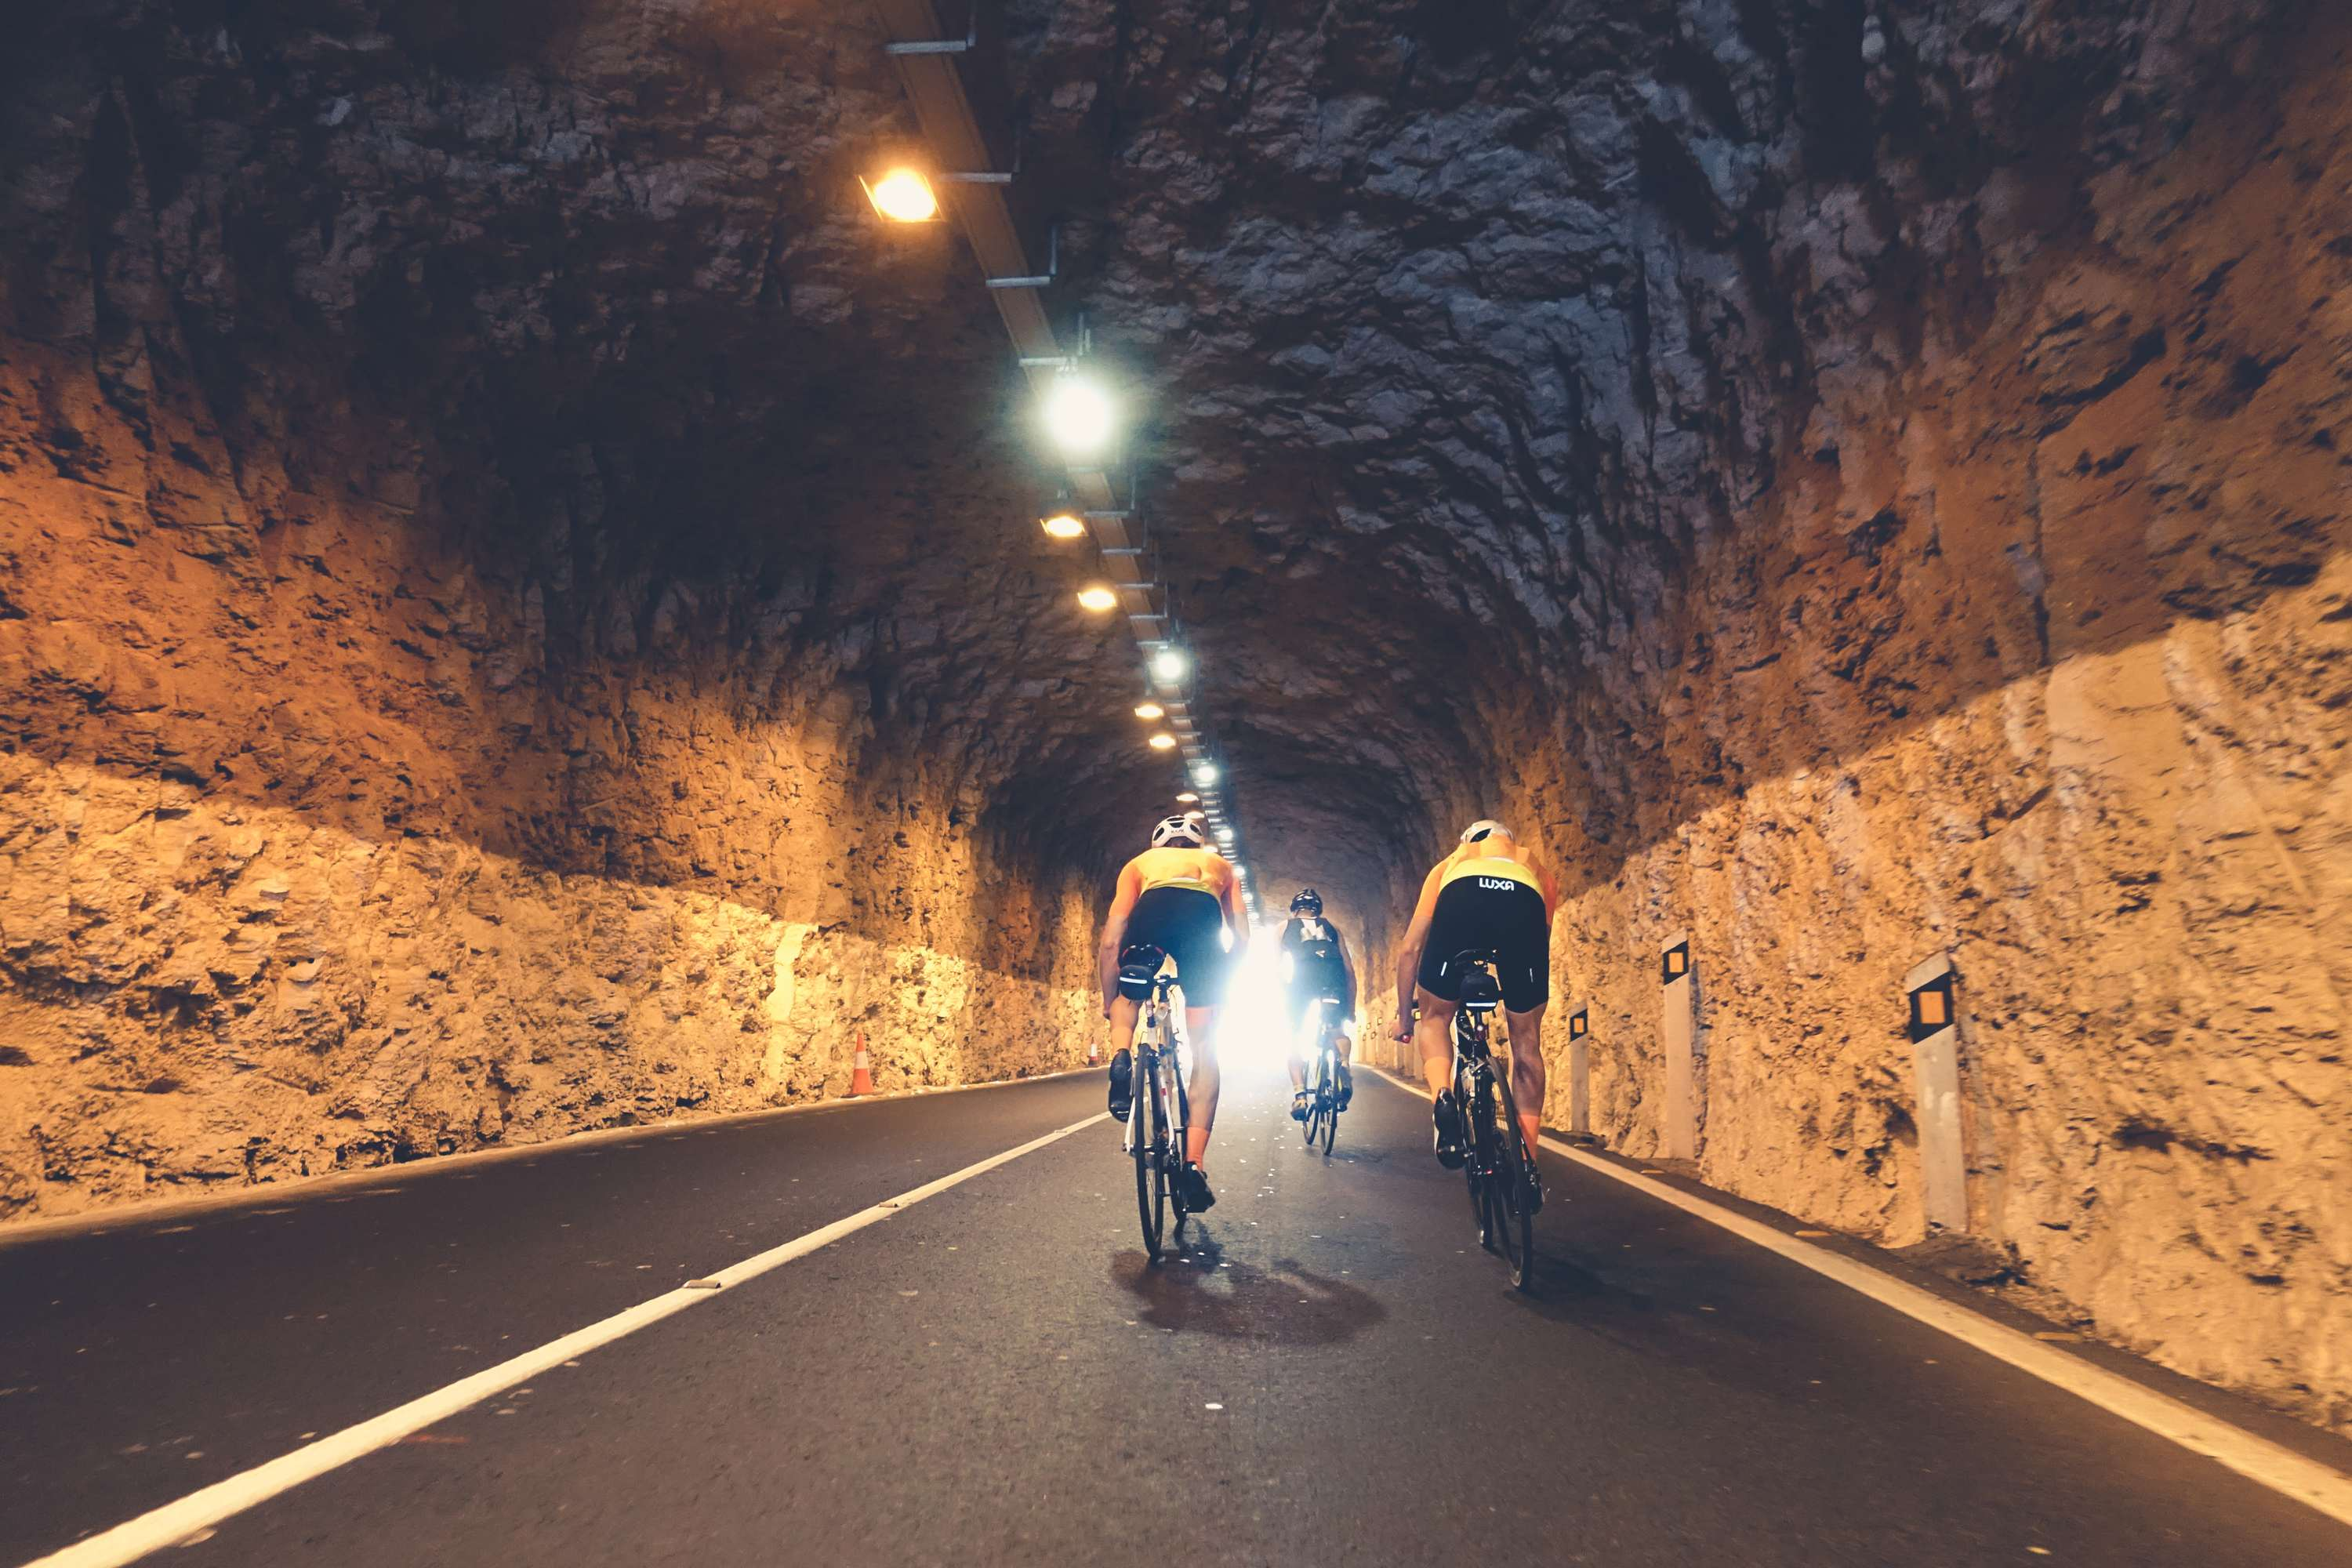 Tunnel in southern part of Gran Canaria. Luxa cycling team